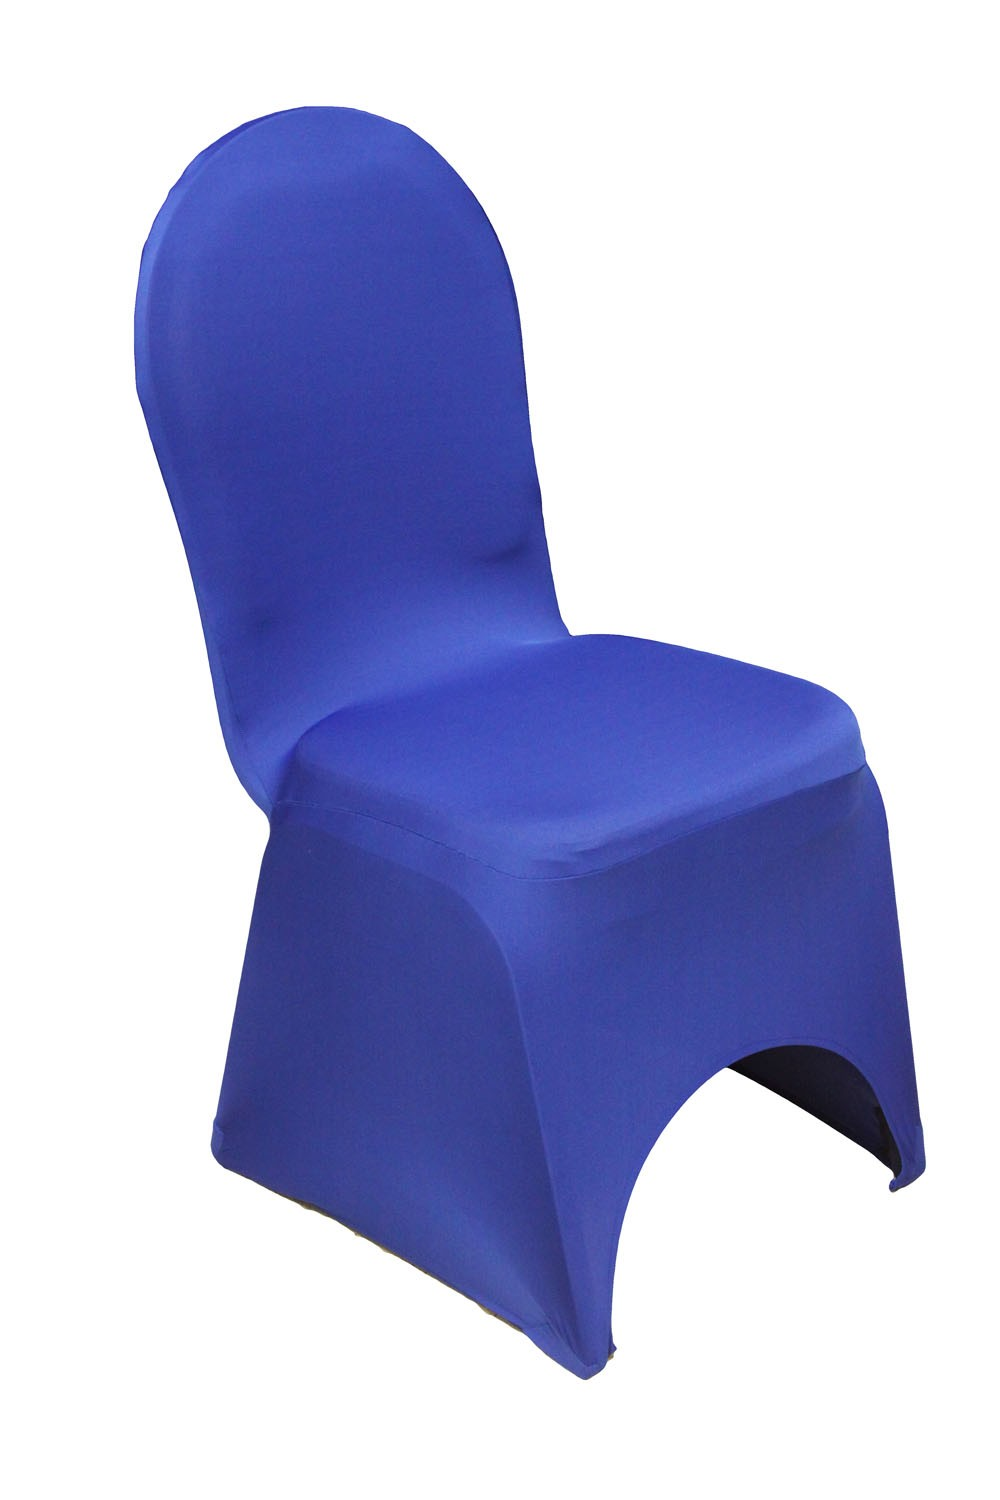 Spandex Chair Covers rentals ROYAL BLUE